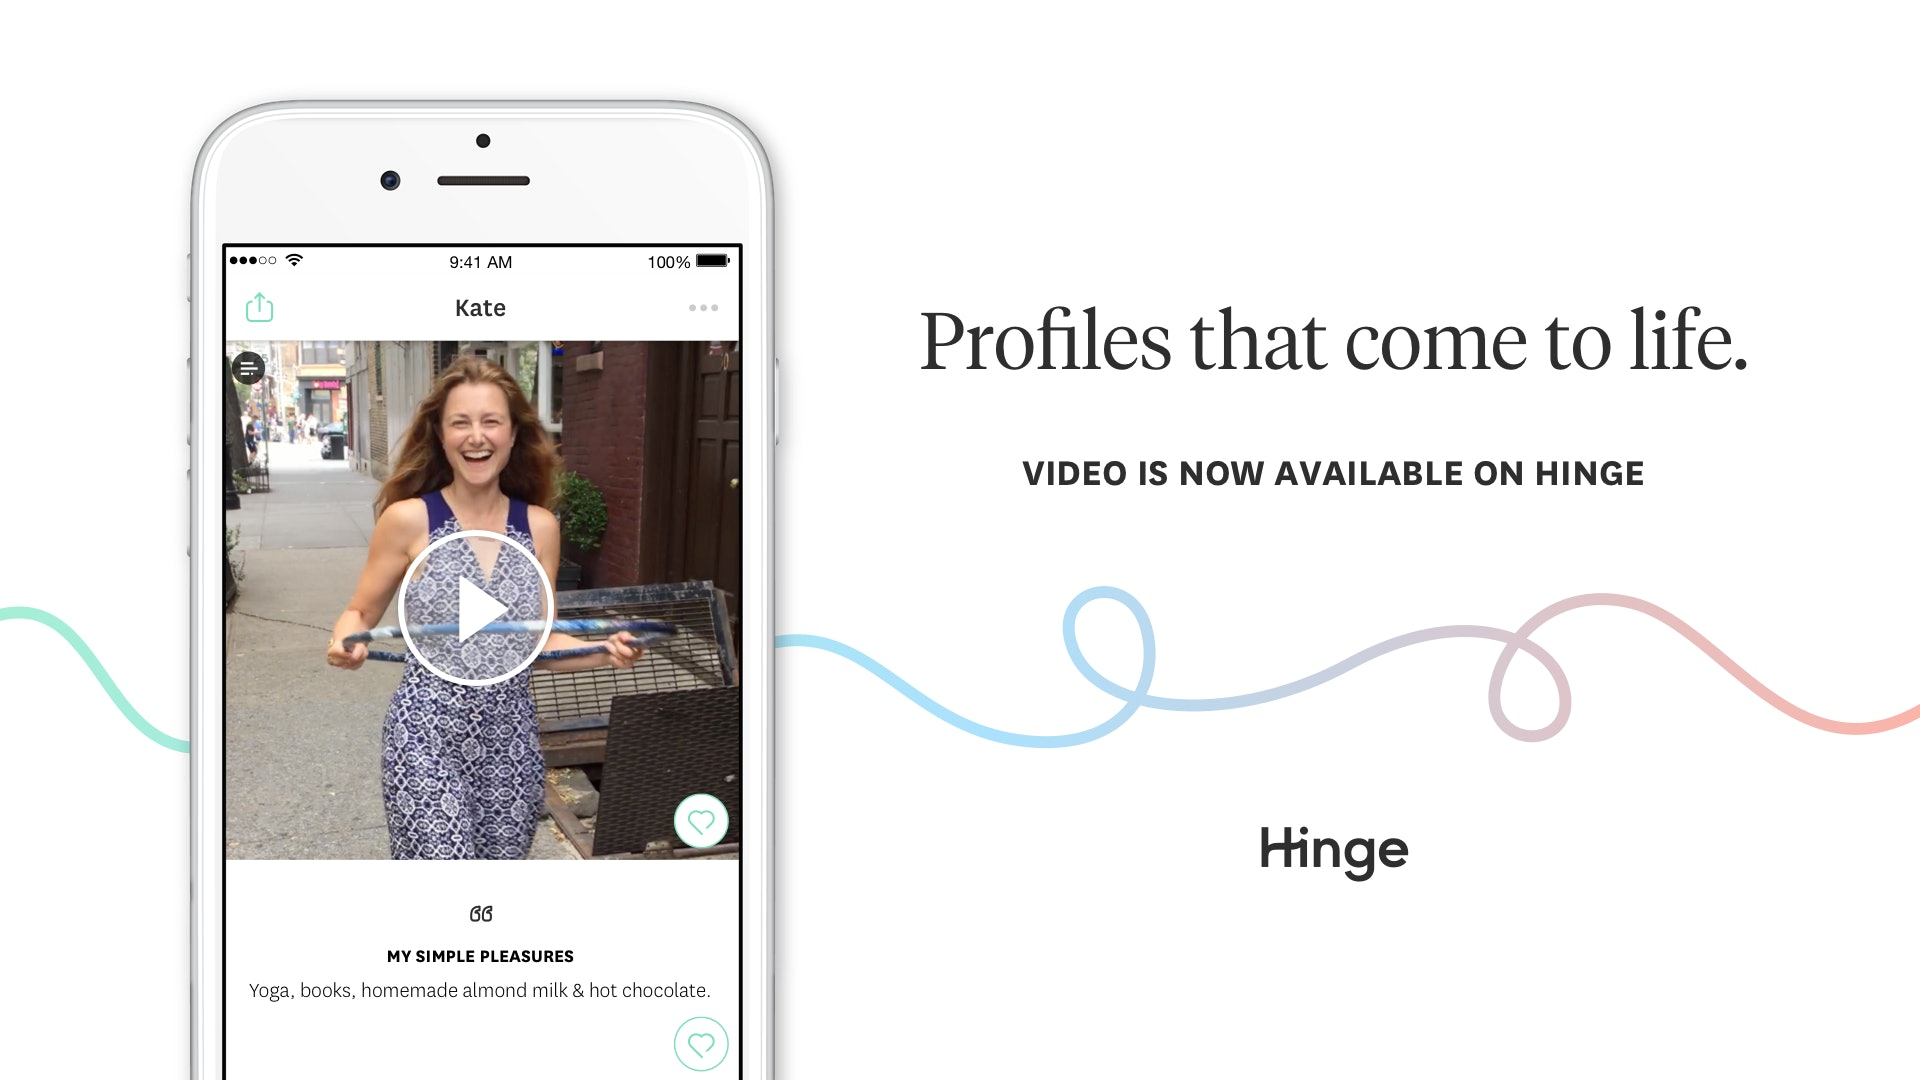 How to use hinge hookup app